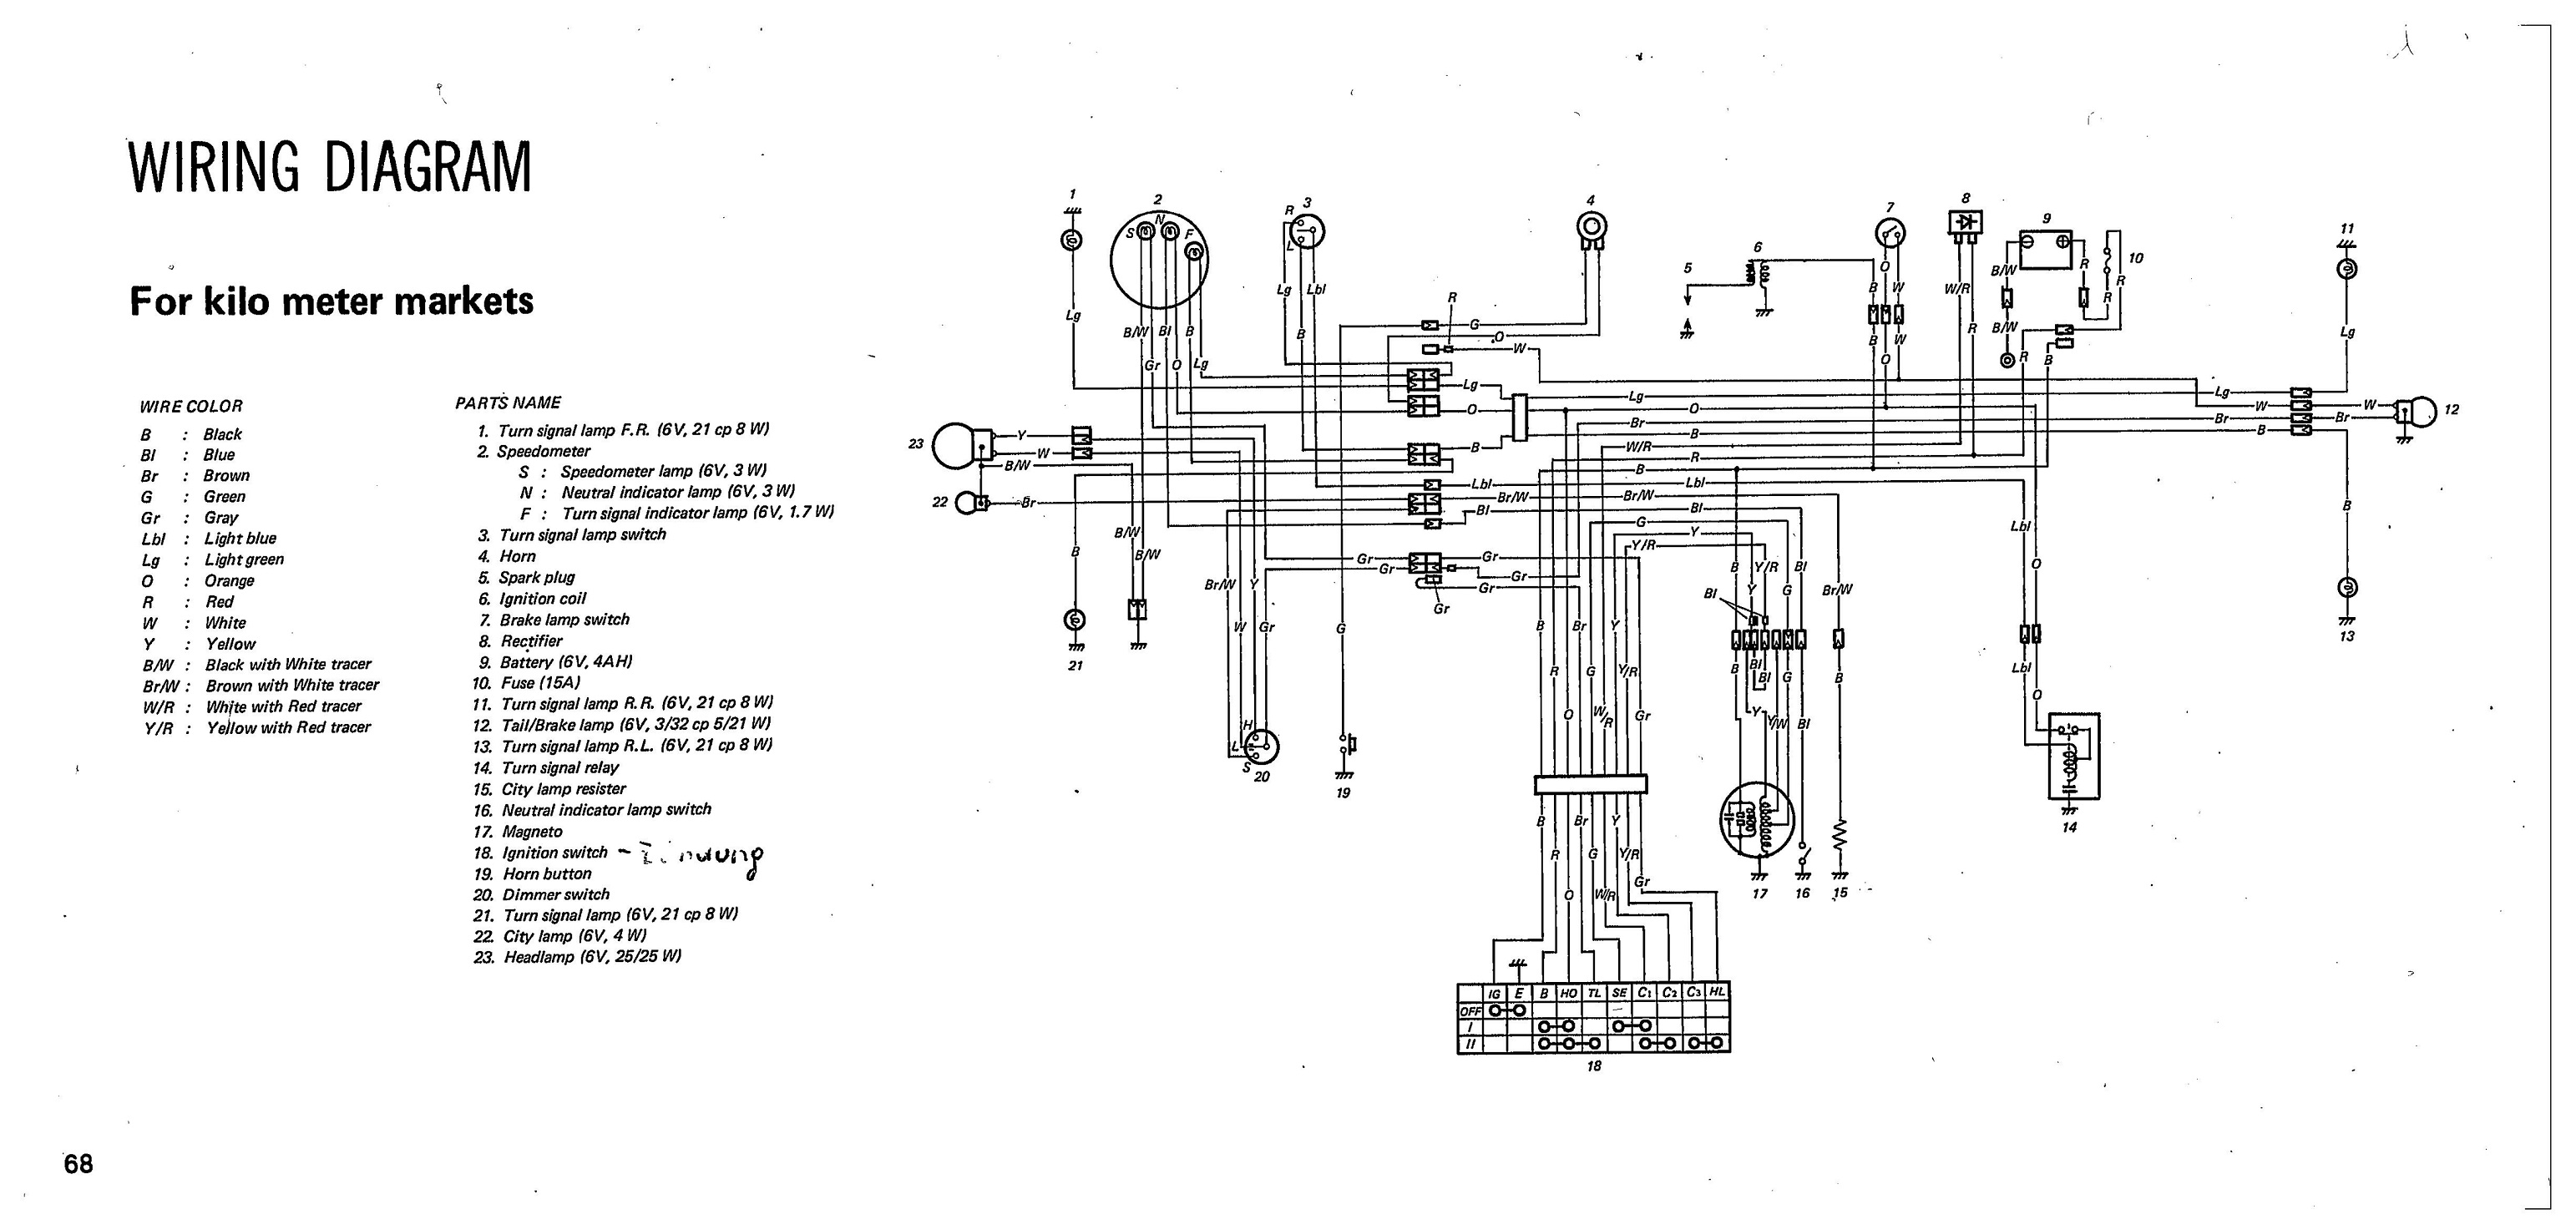 7 Flat Trailer Wiring. Diagrams. Wiring Diagram Images